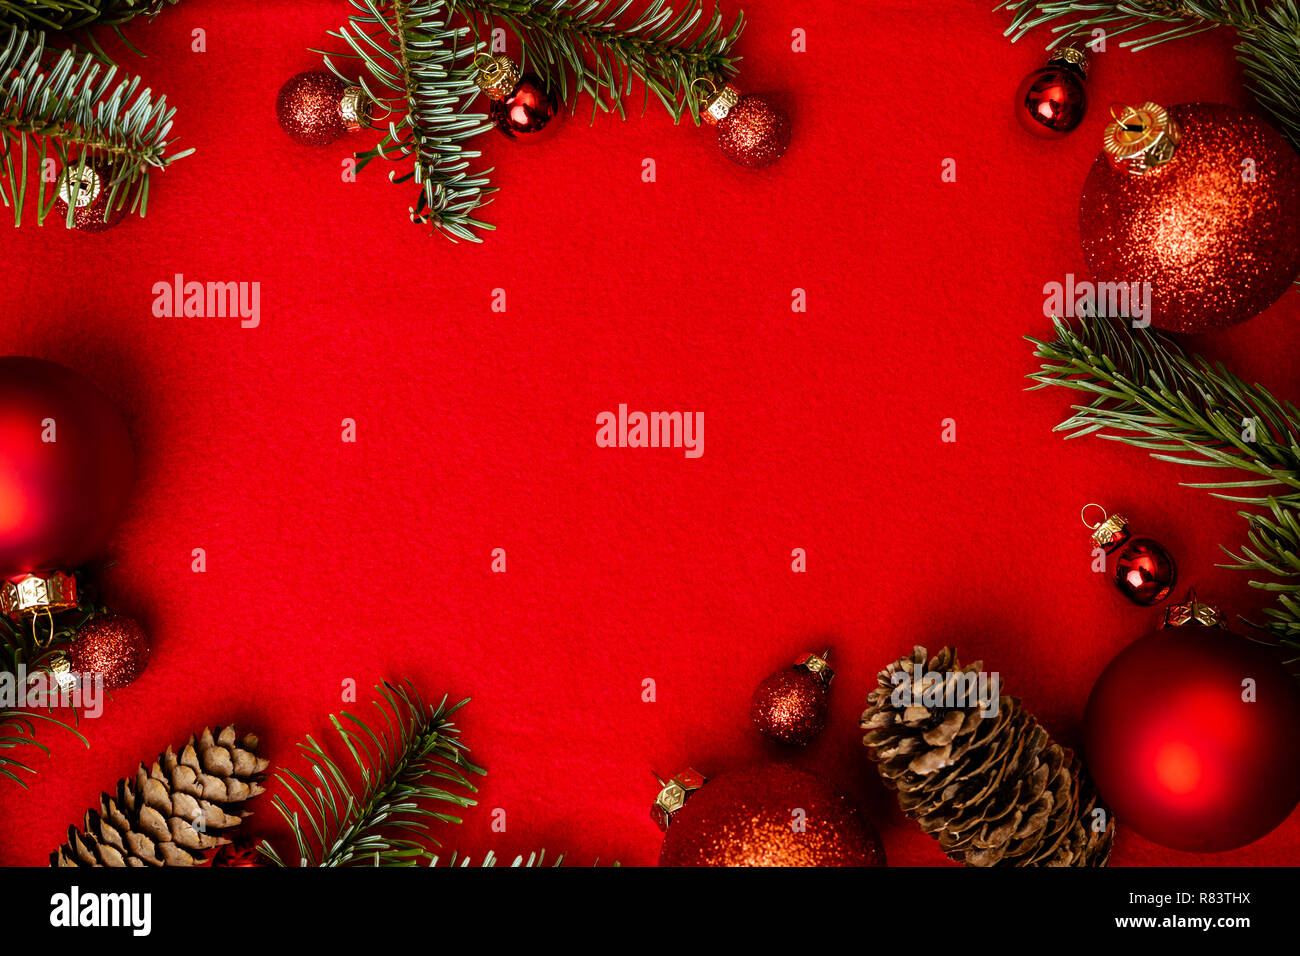 Christmas red background with fir tree, red christmass balls frame